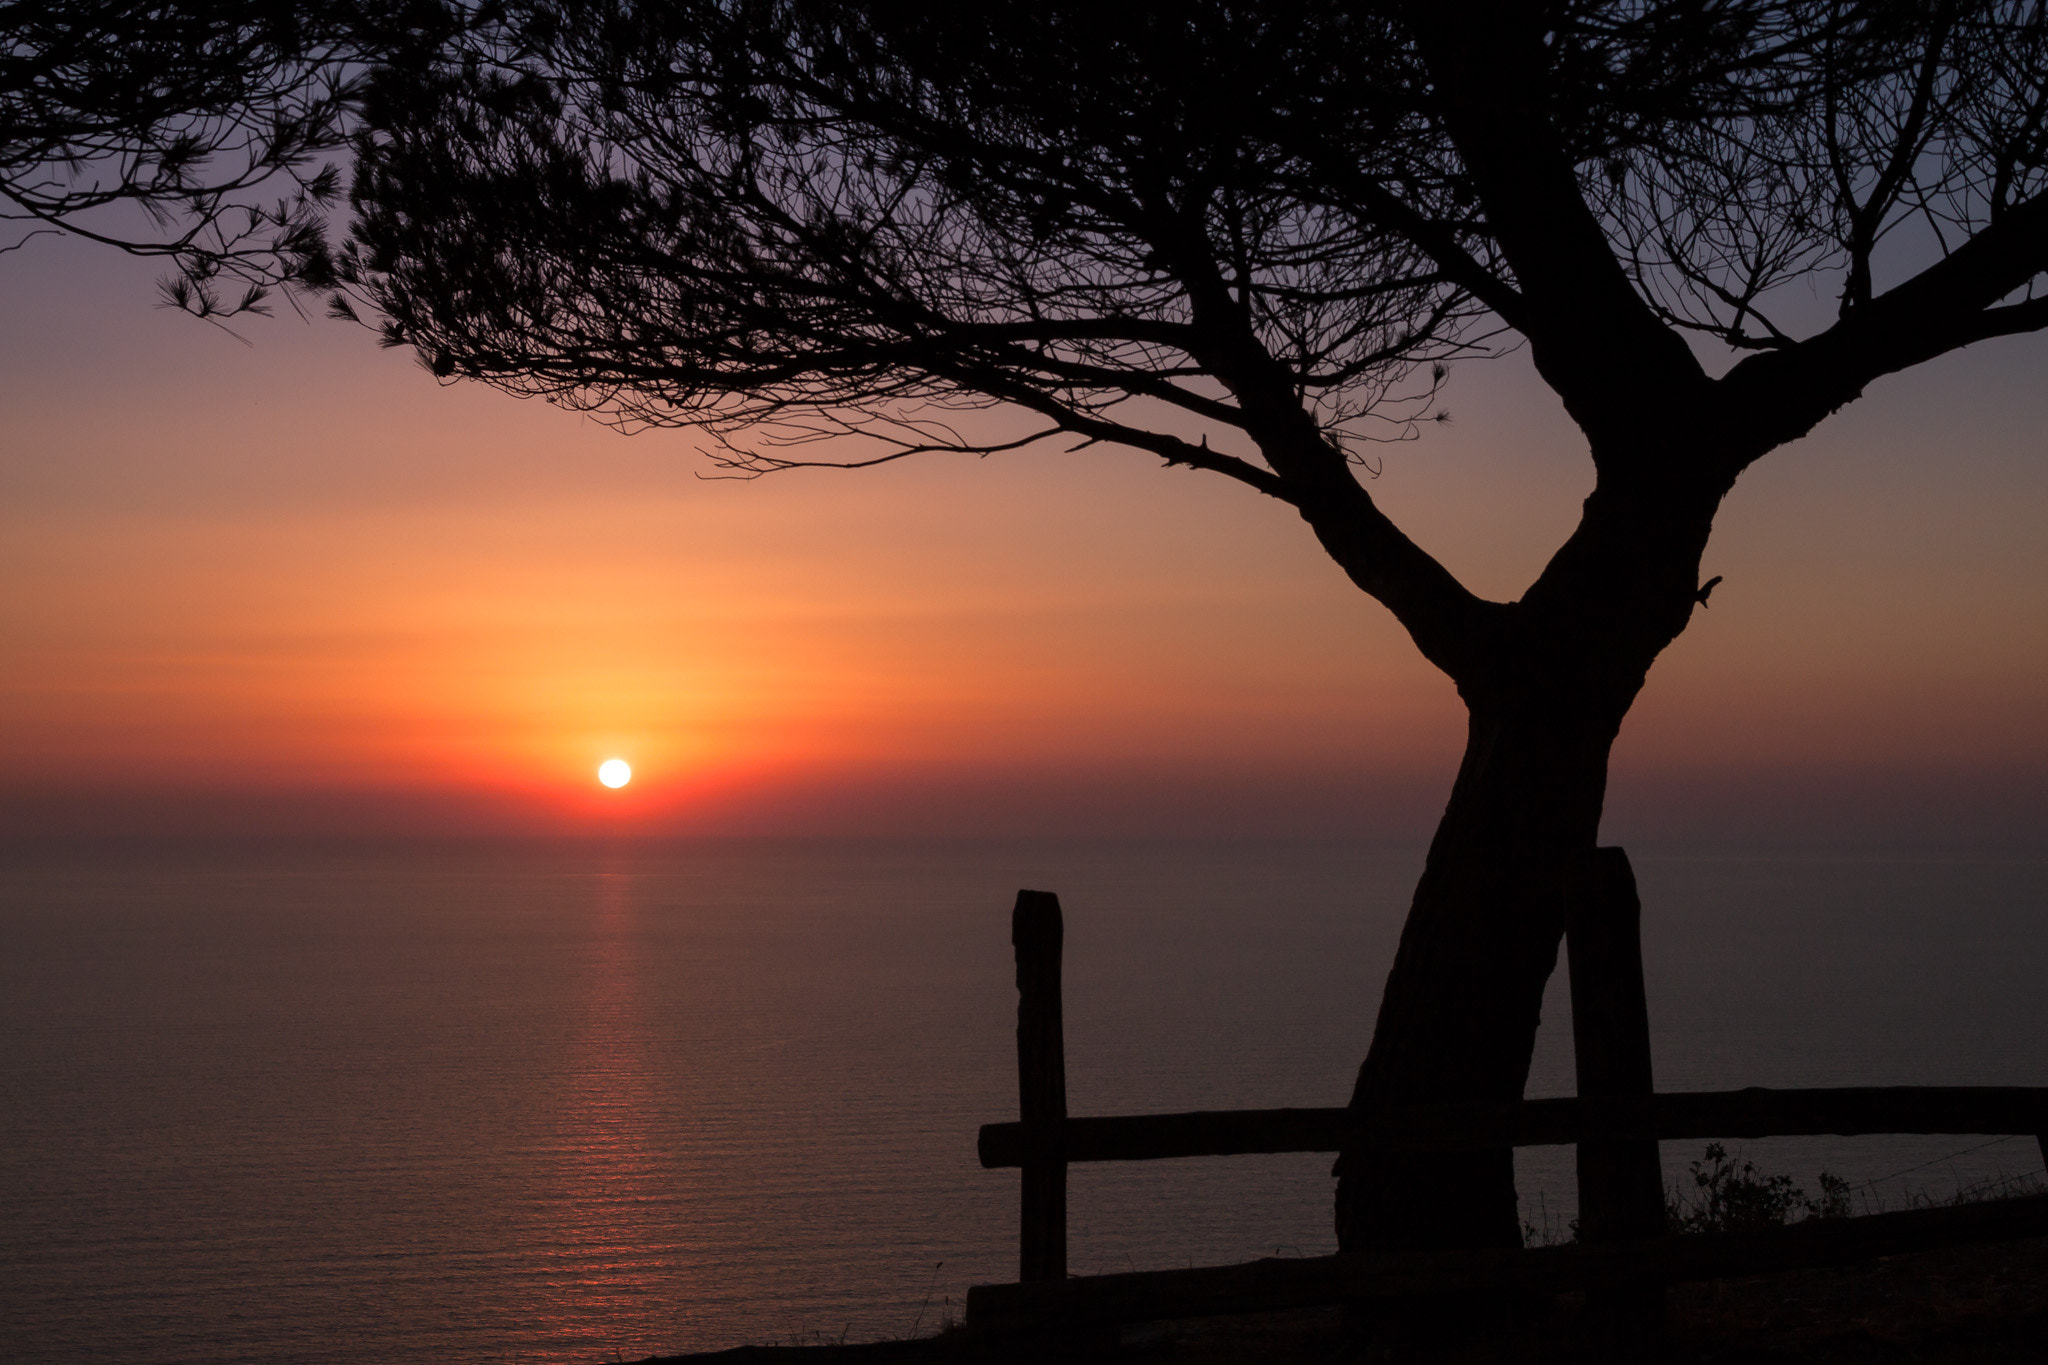 Photograph Populonia by Raymond van der Hoogt on 500px